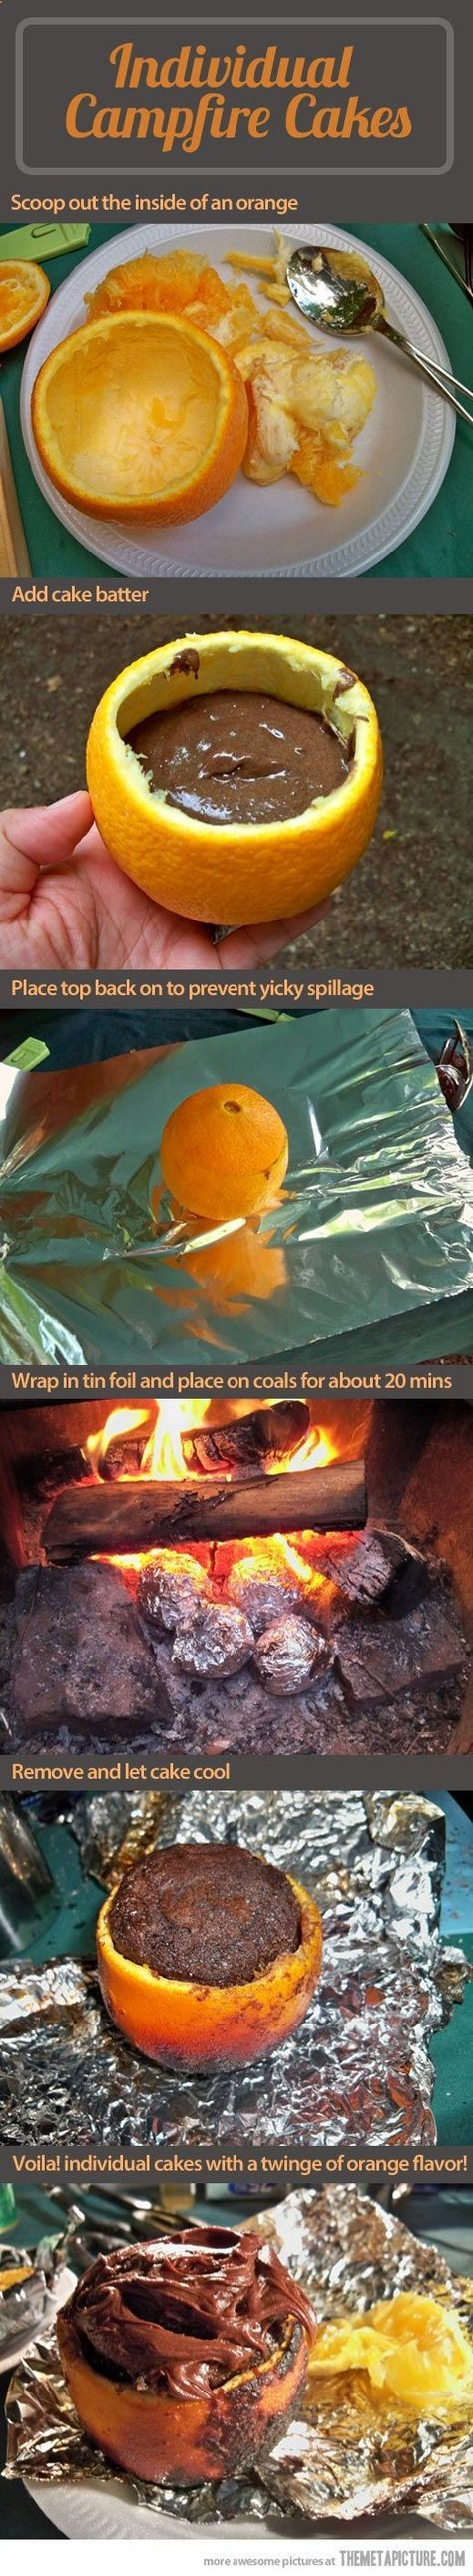 Oranges, fire and deliciousness